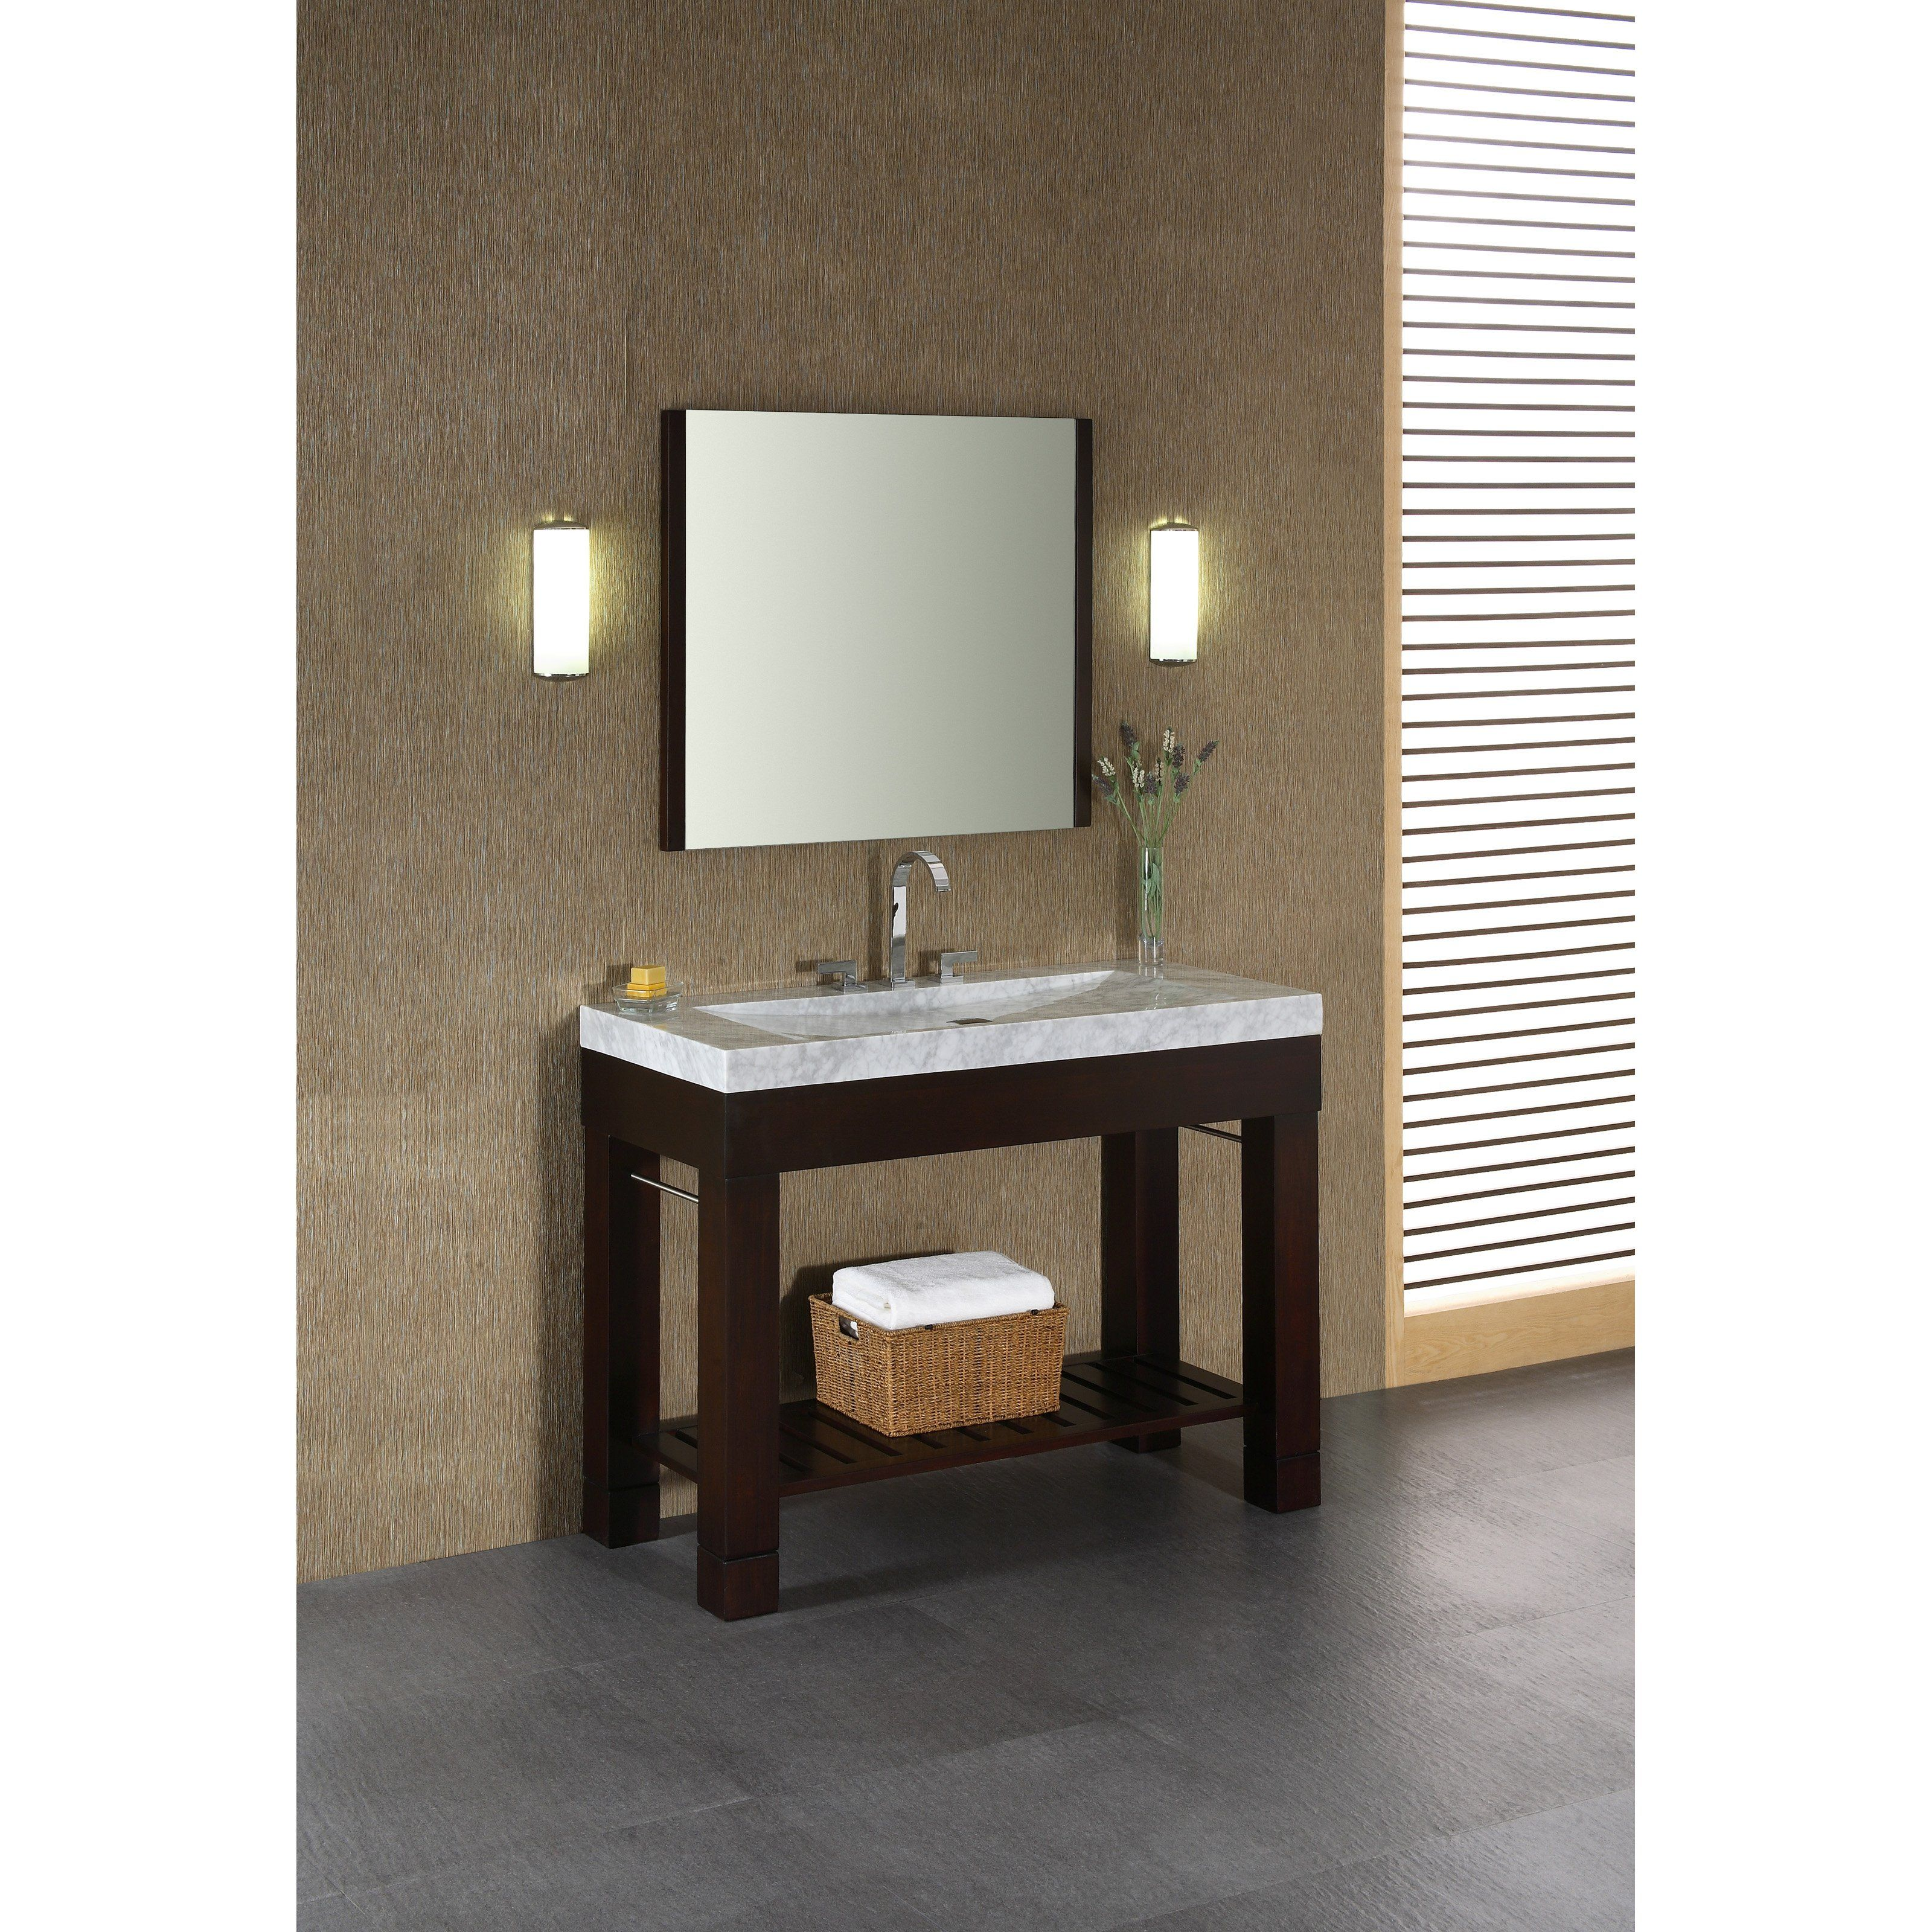 Have To Have It Xylem Europa 48 In Single Bathroom Vanity With Stone Top And Optional Mirror 2036 99 Muebles Europa